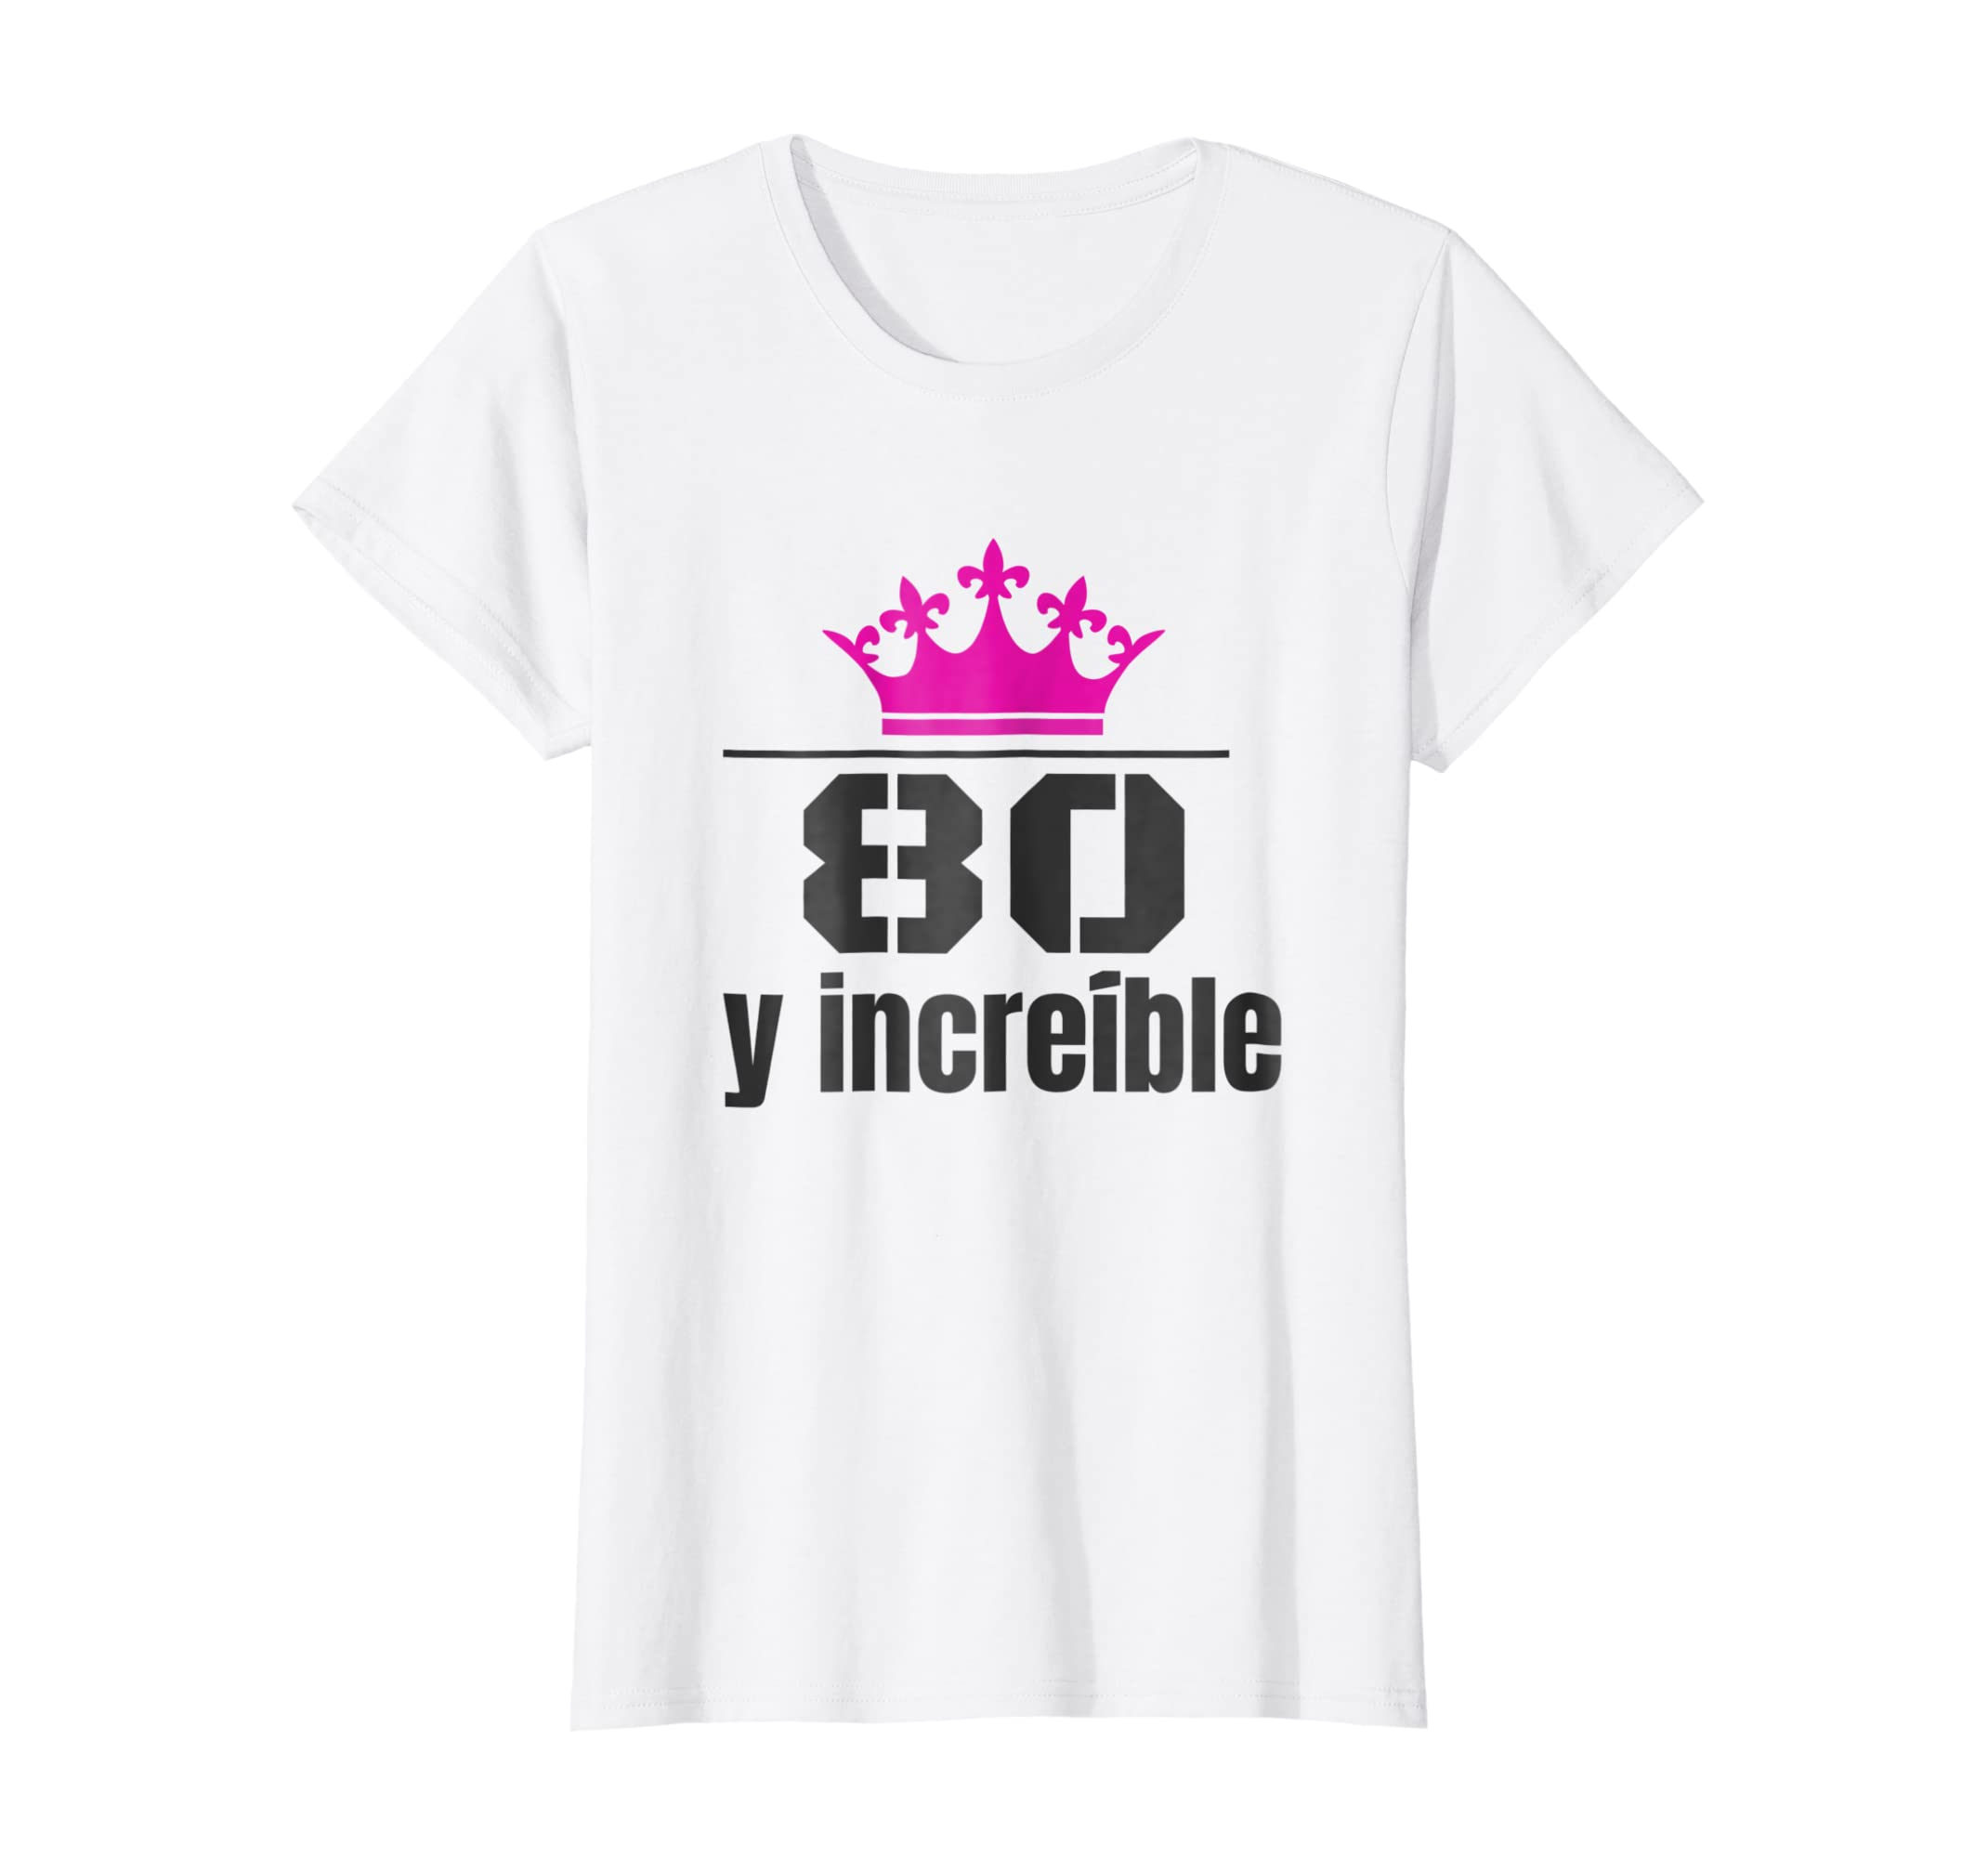 Amazon.com: Camisa de Cumpleanos 80 Anos Spanish Birthday Shirt Mujer: Clothing